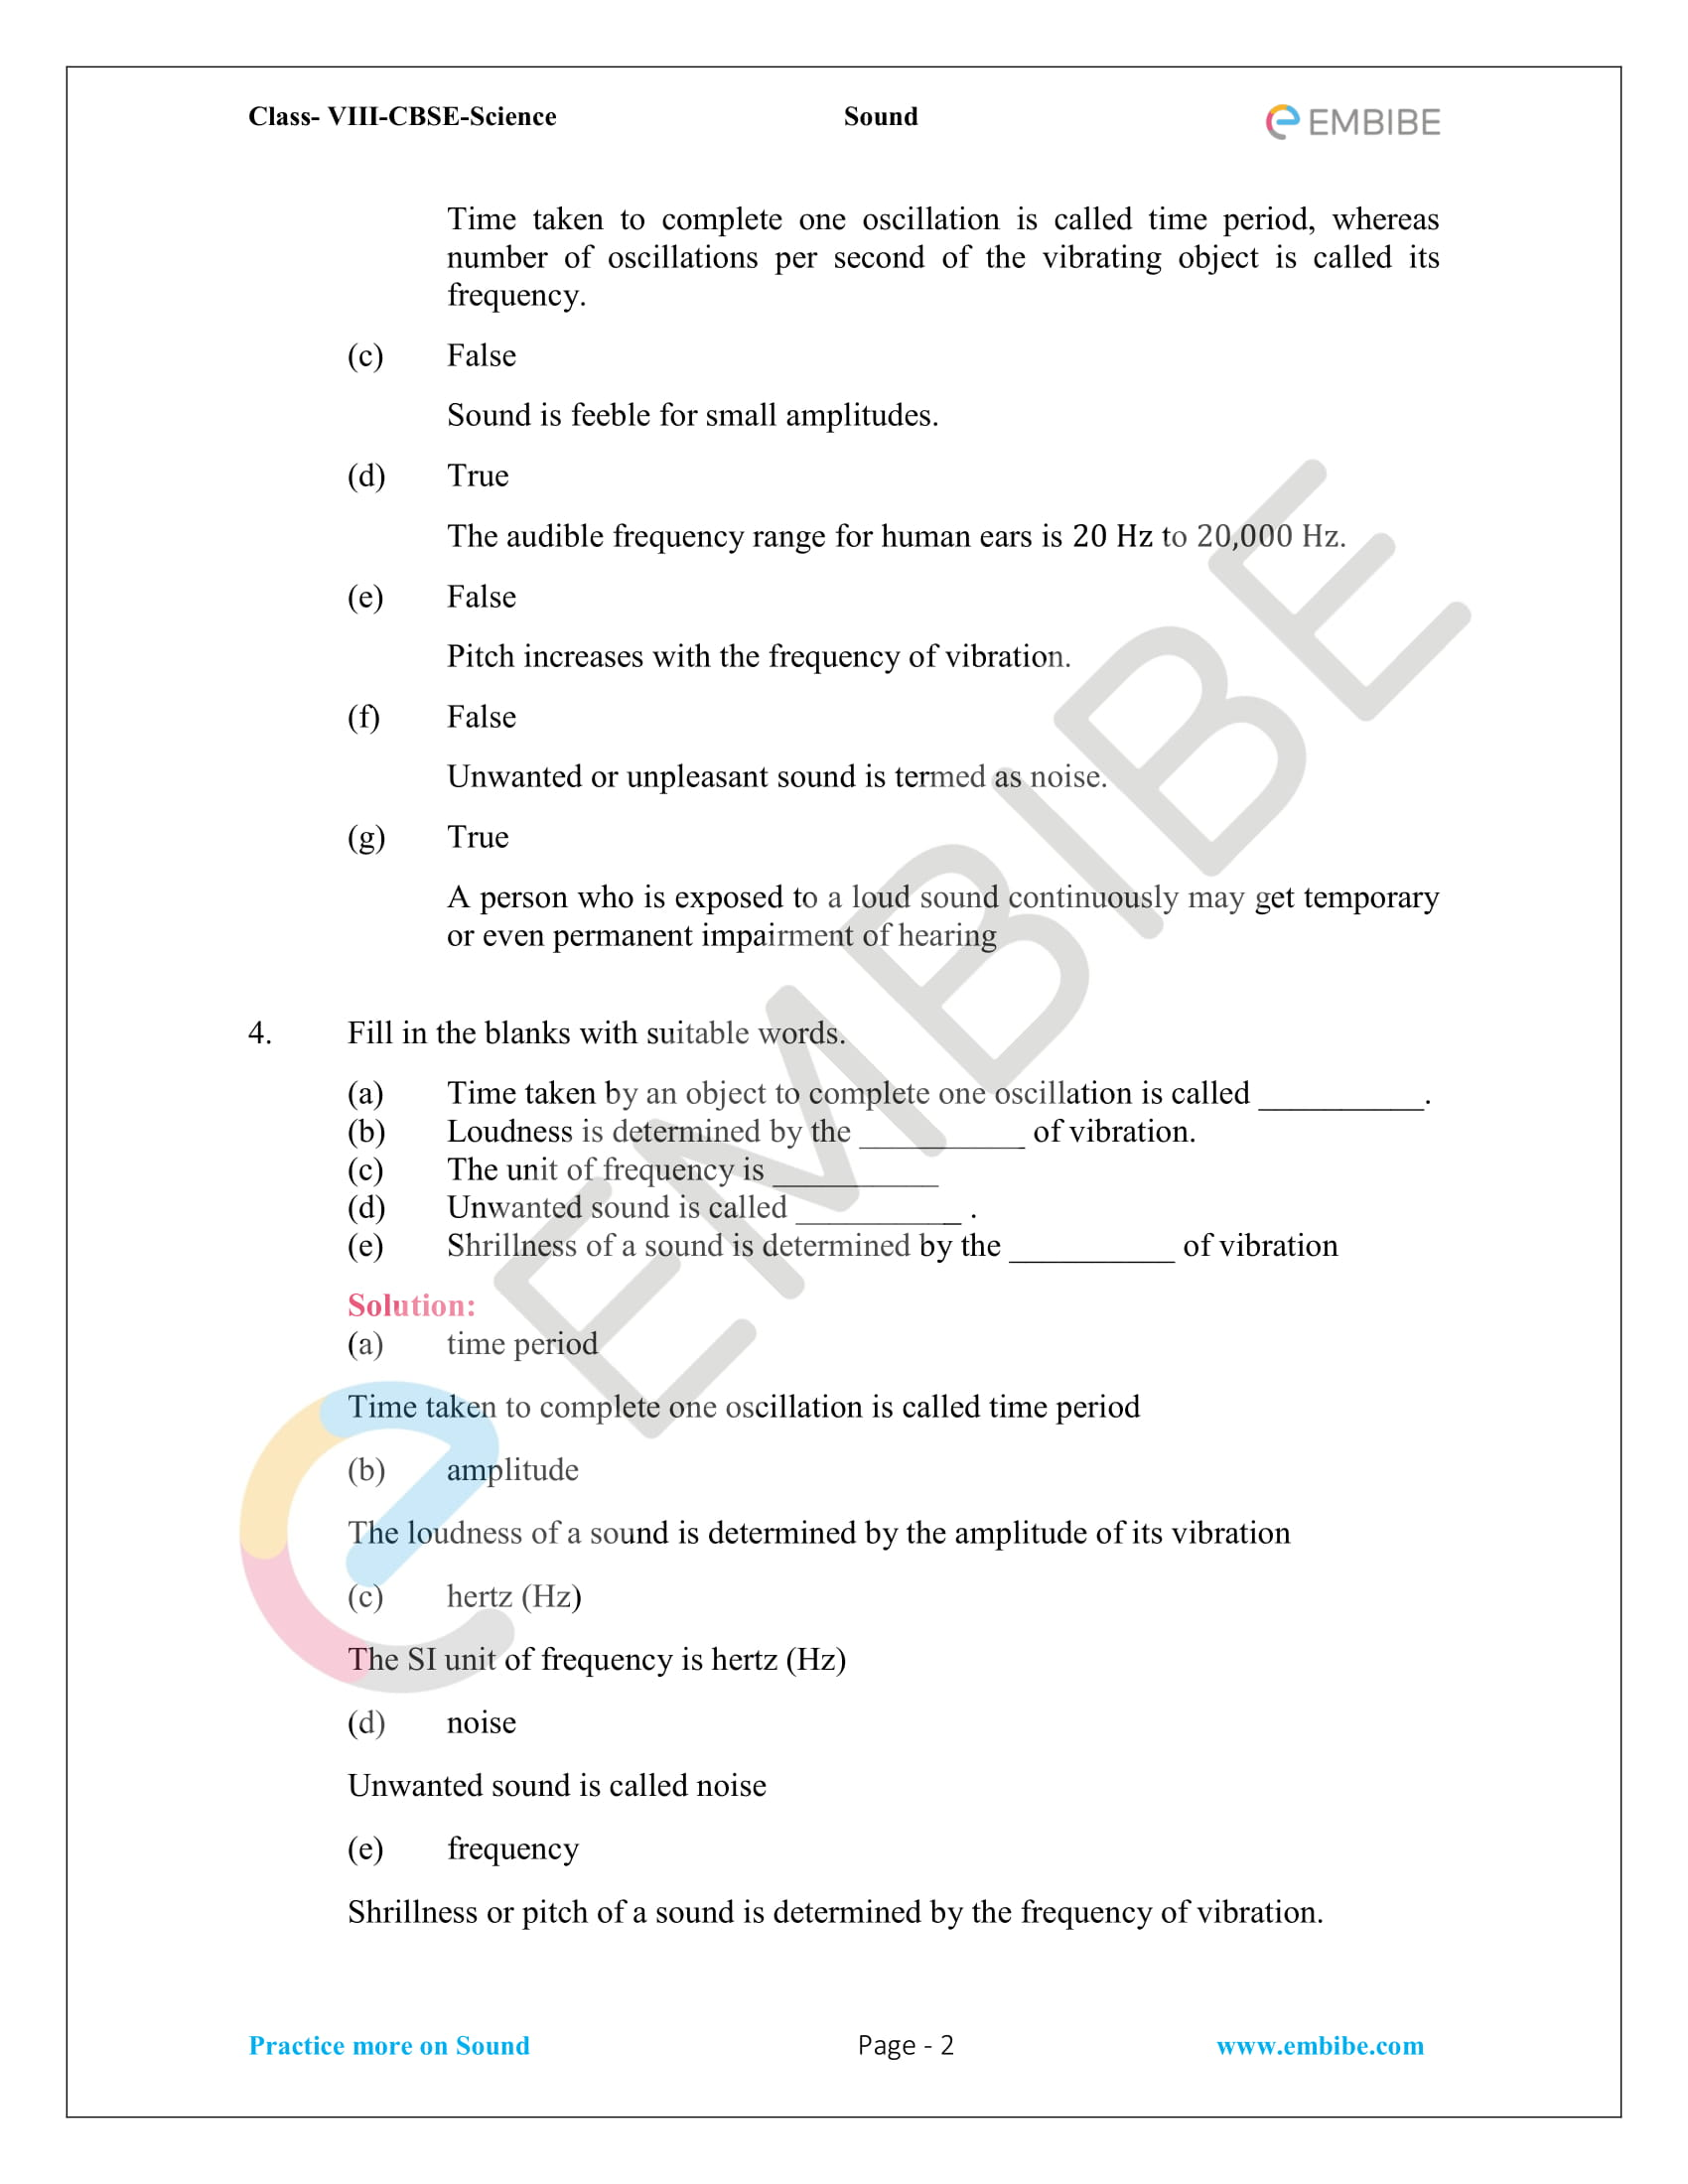 NCERT Solutions For Class 8 Science Chapter 13: Sound (Free